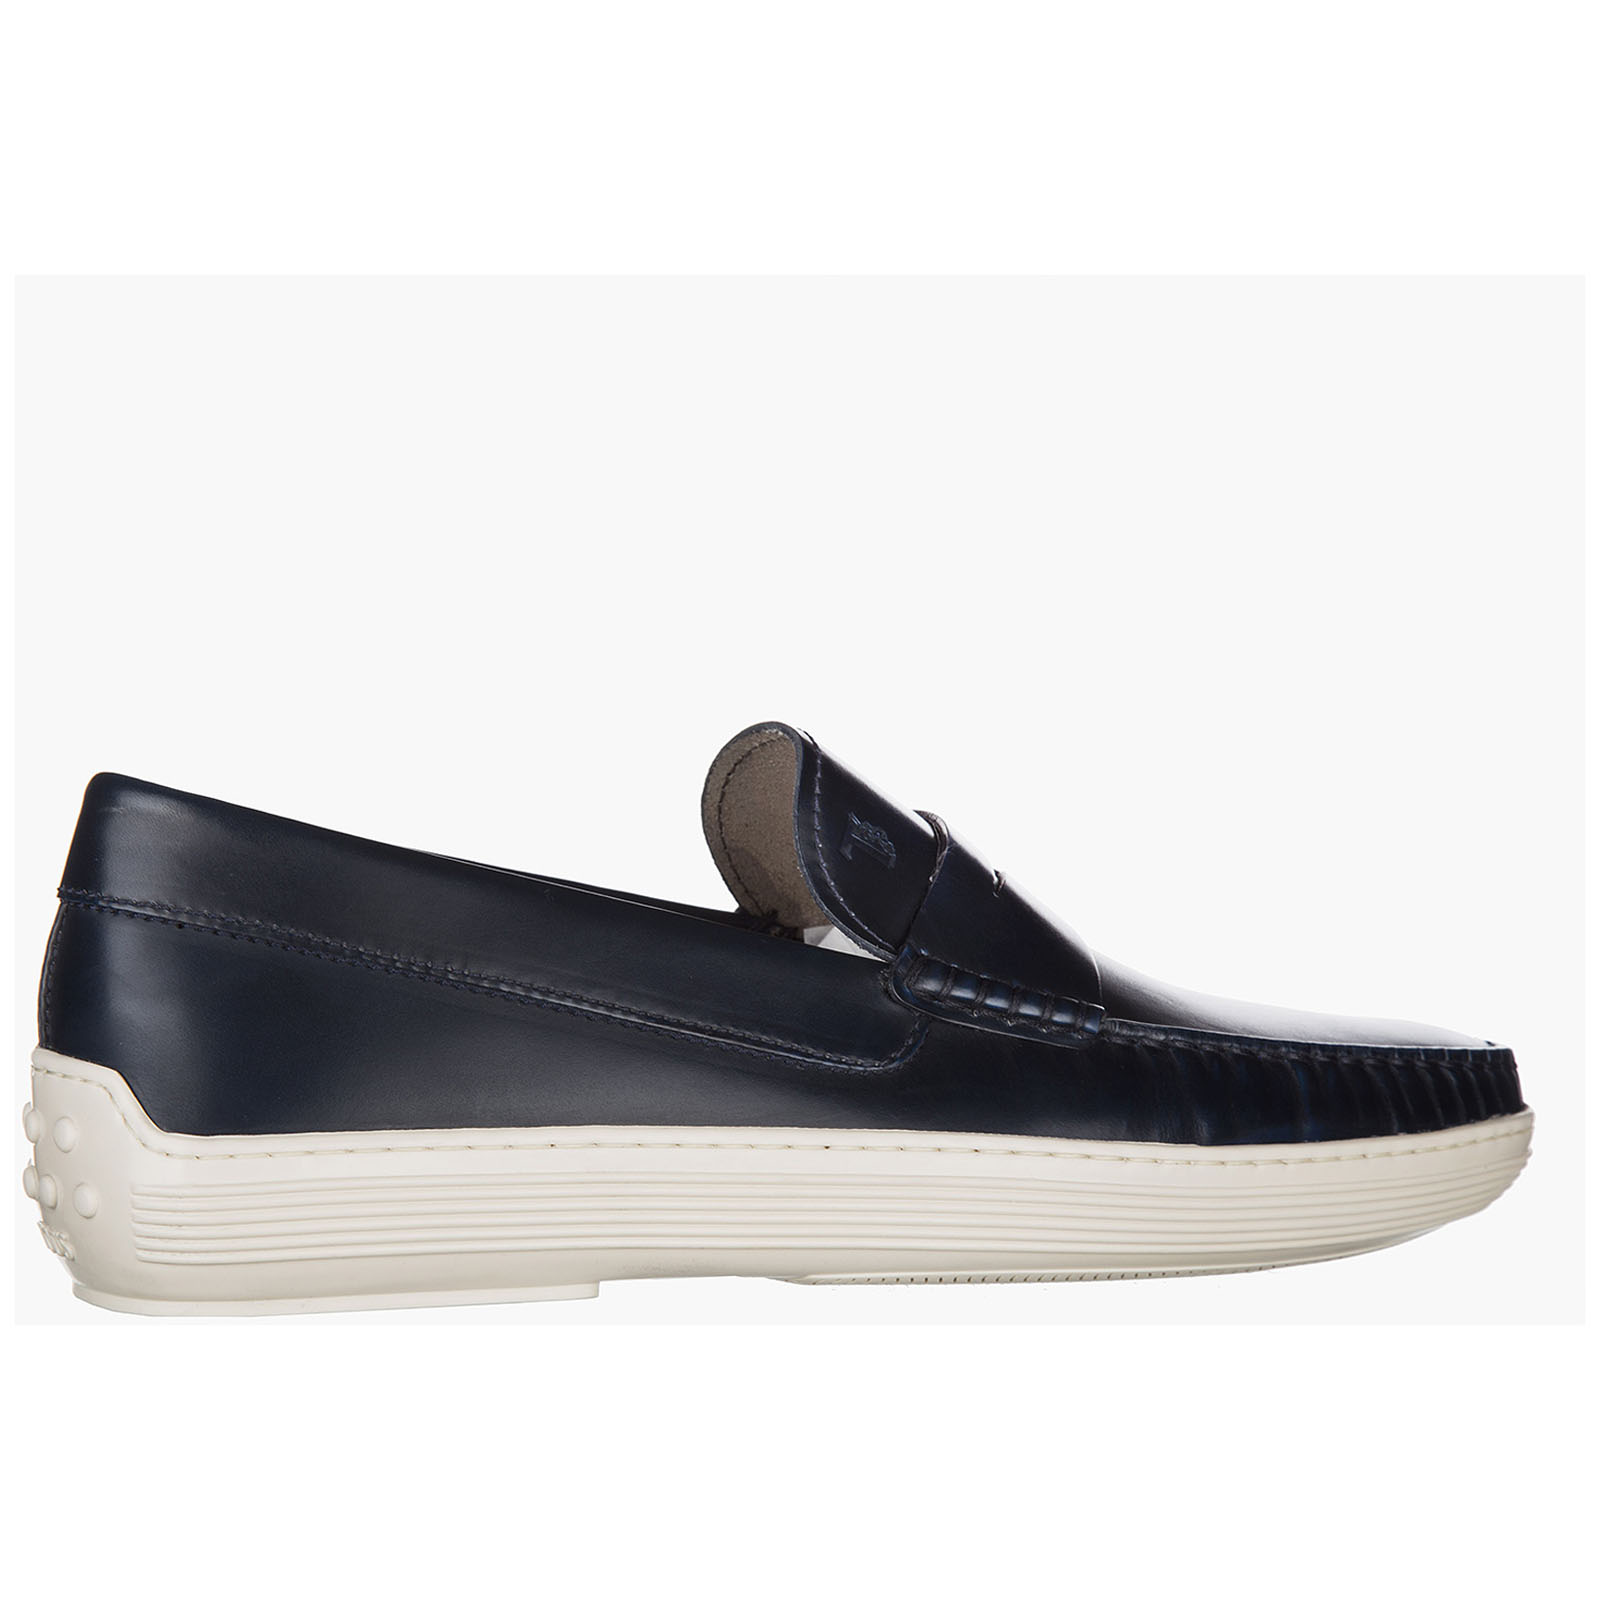 Men's leather loafers moccasins  fondo gomma